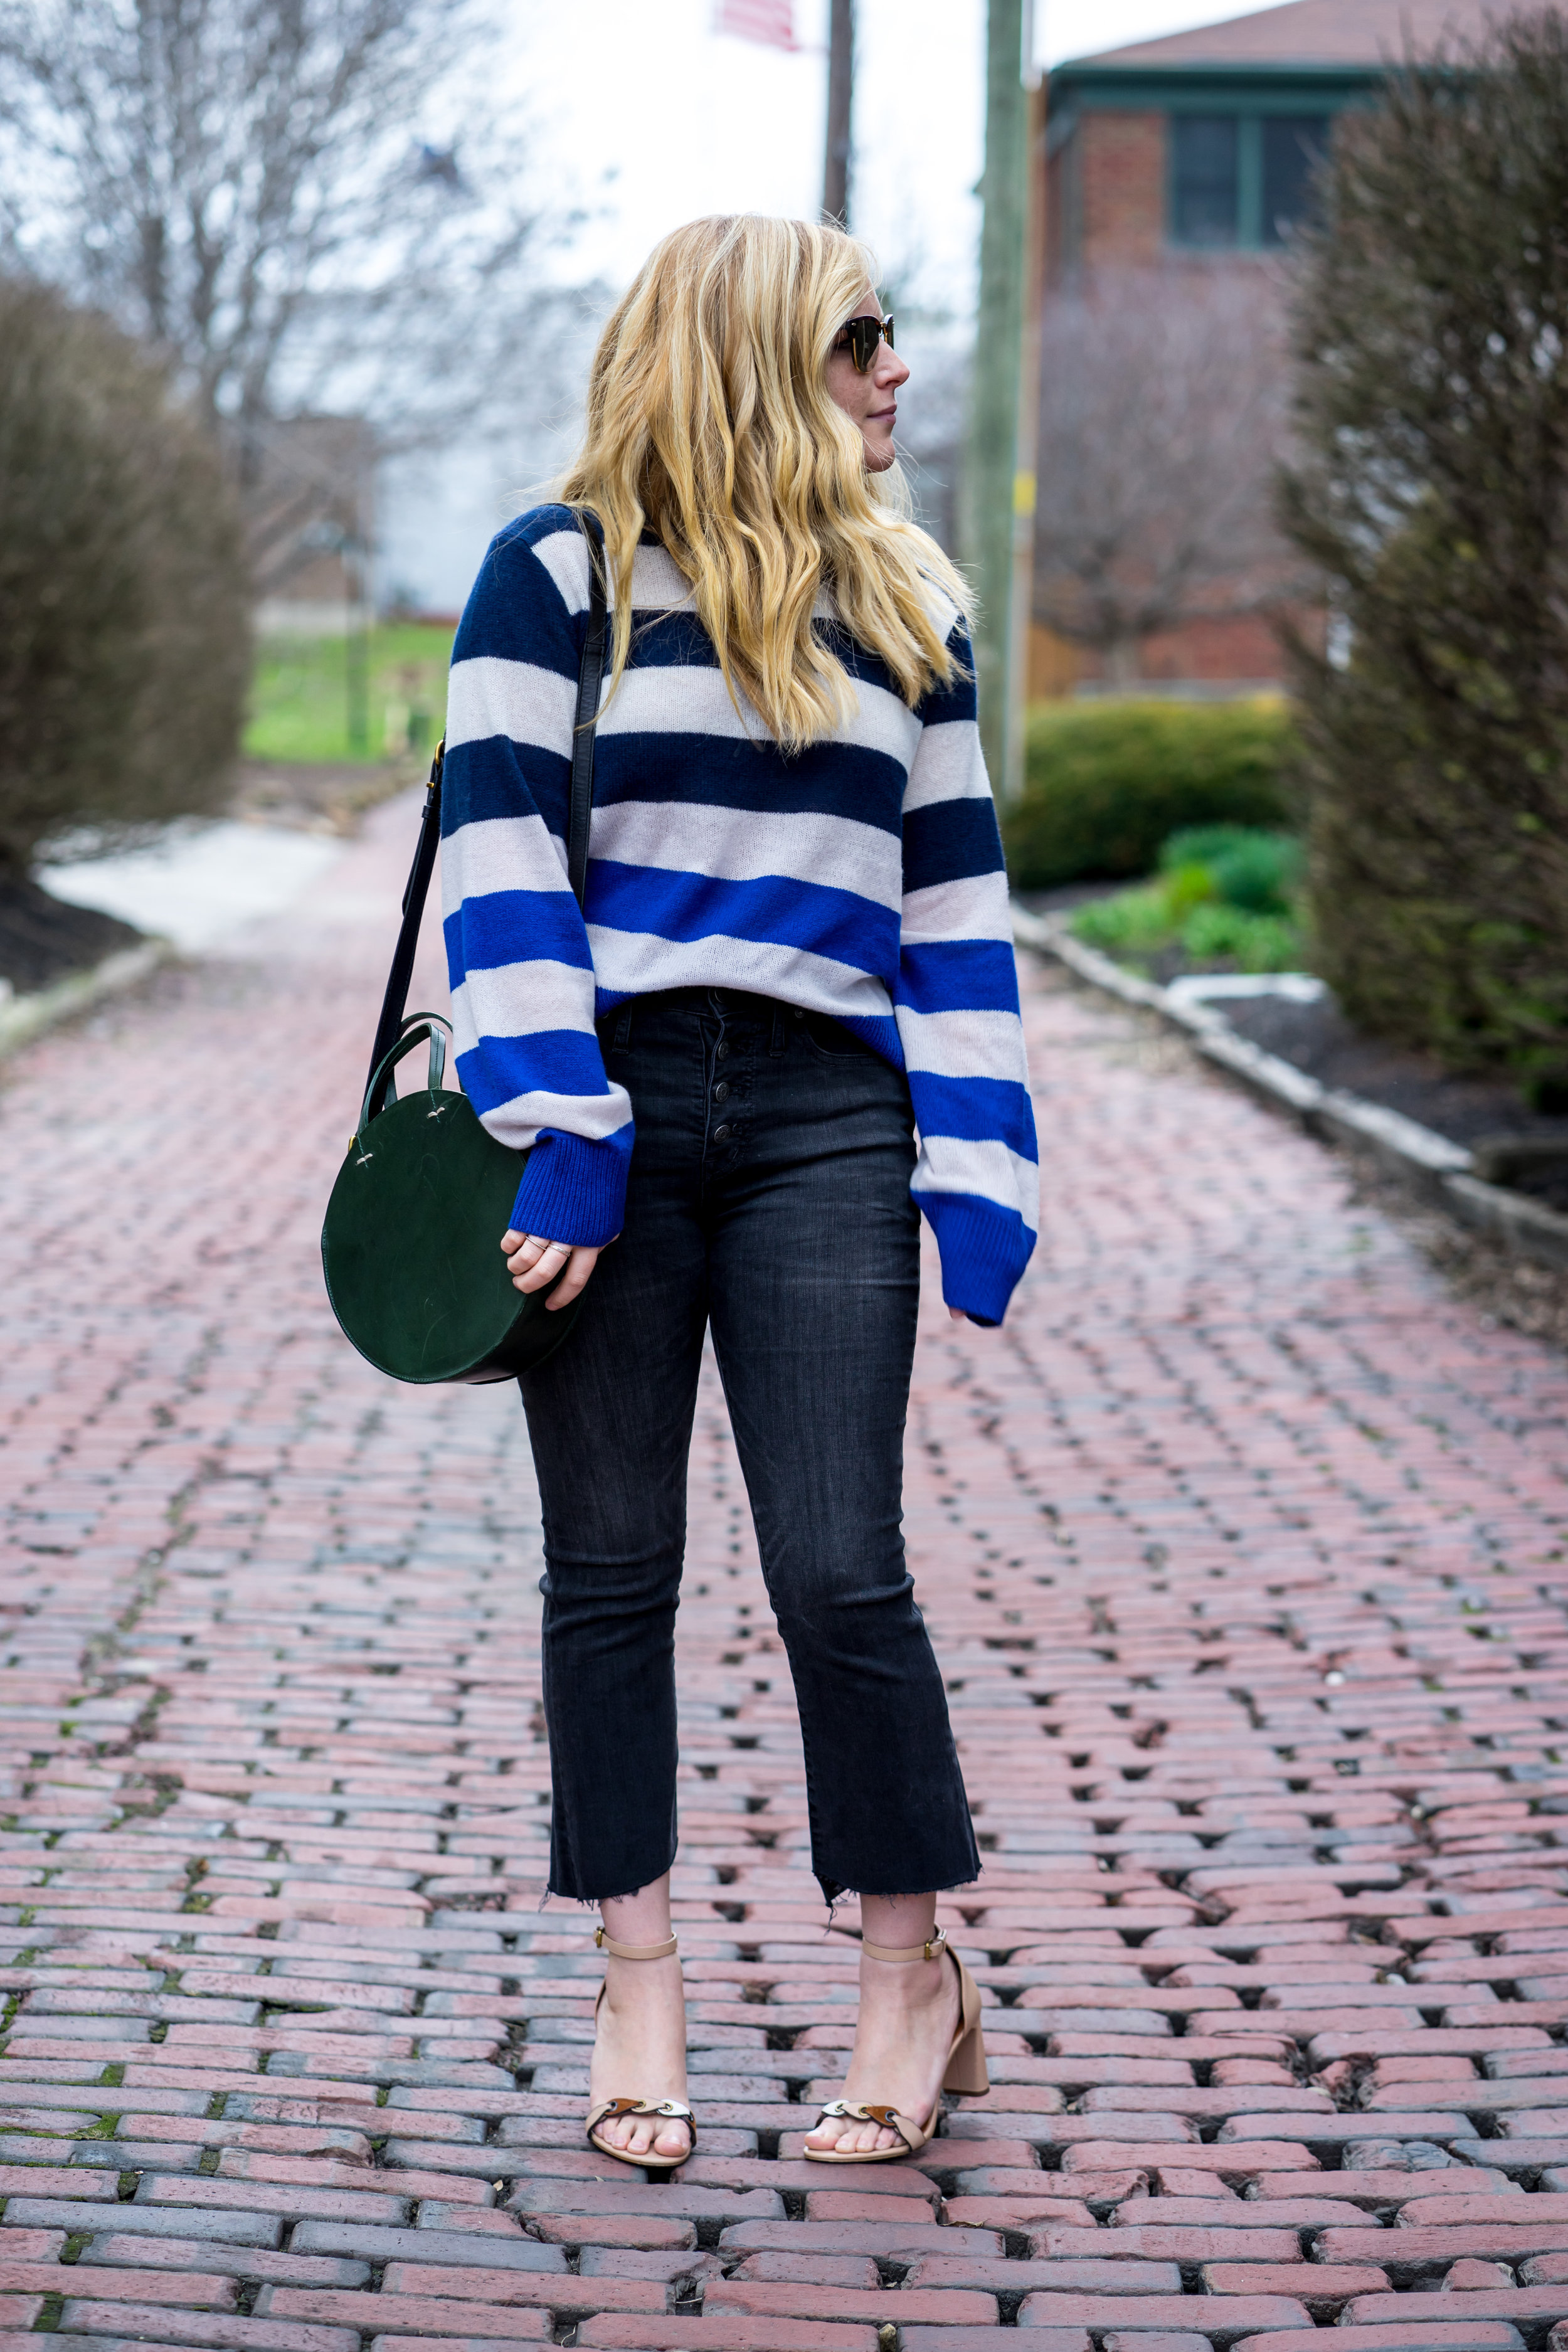 Maggie a la Mode - Yes You Can Wear Cropped Bootcut Jeans Madewell Cali Demi Boot